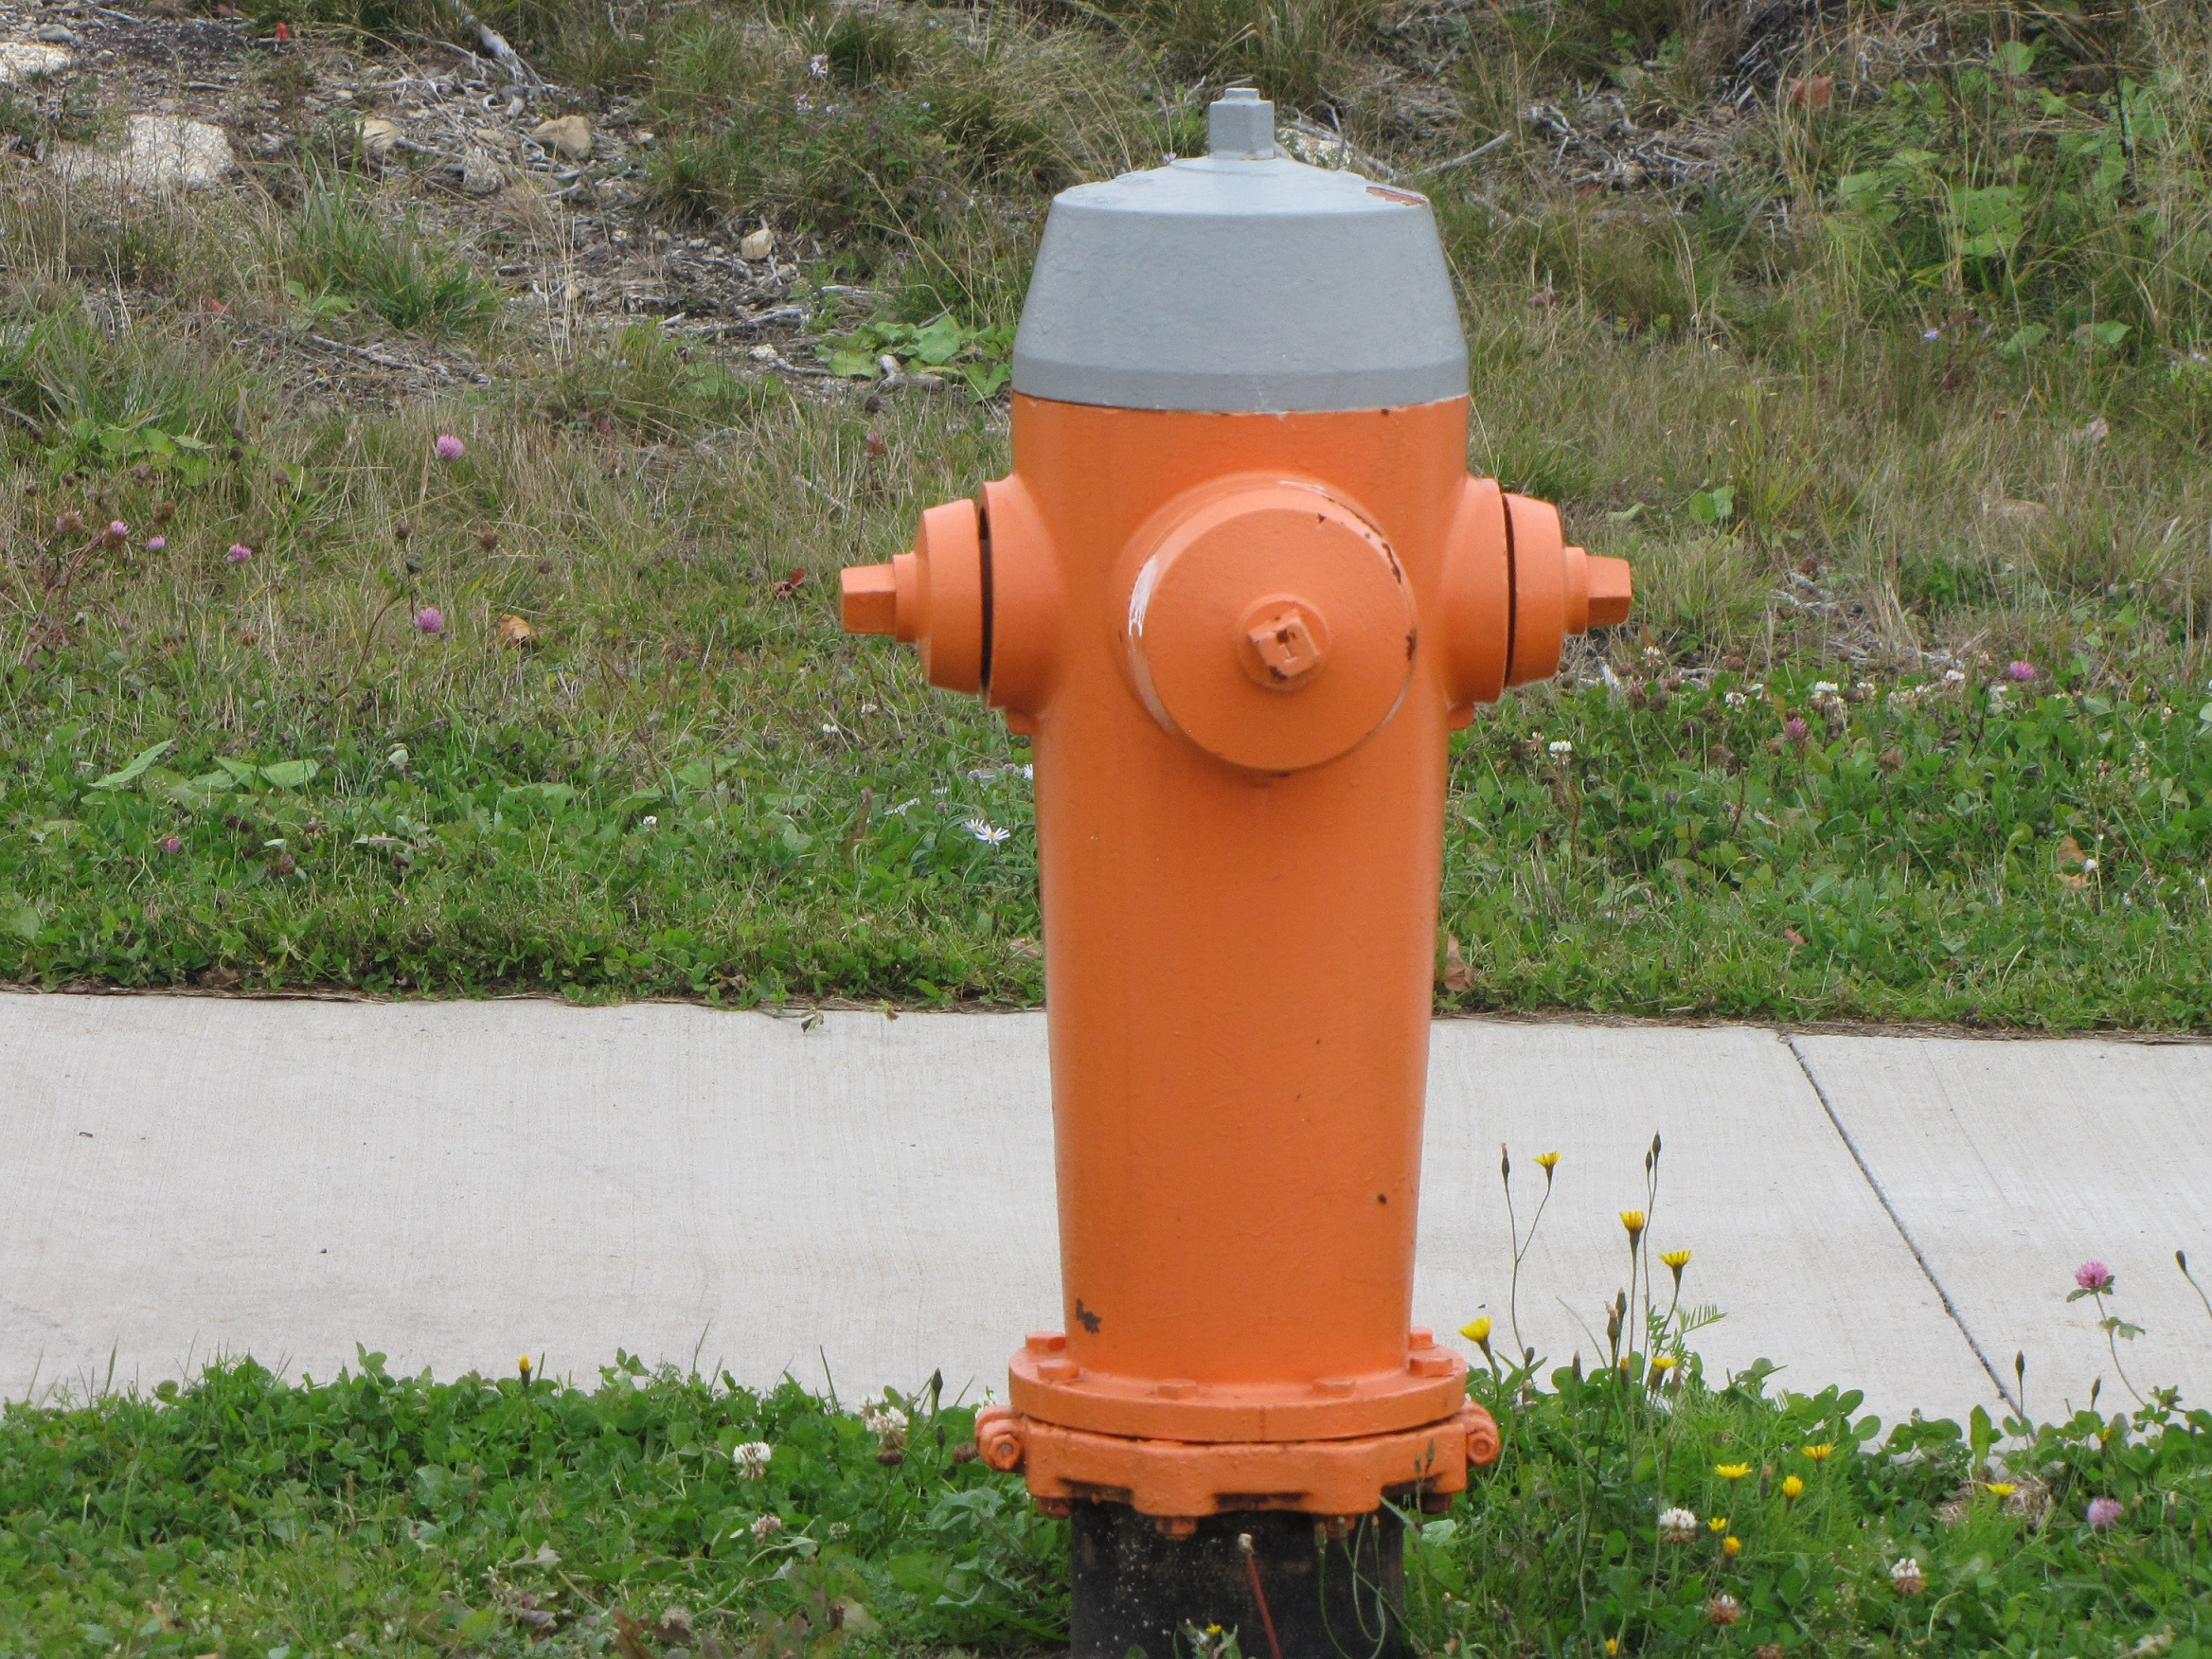 Orange fire hydrant